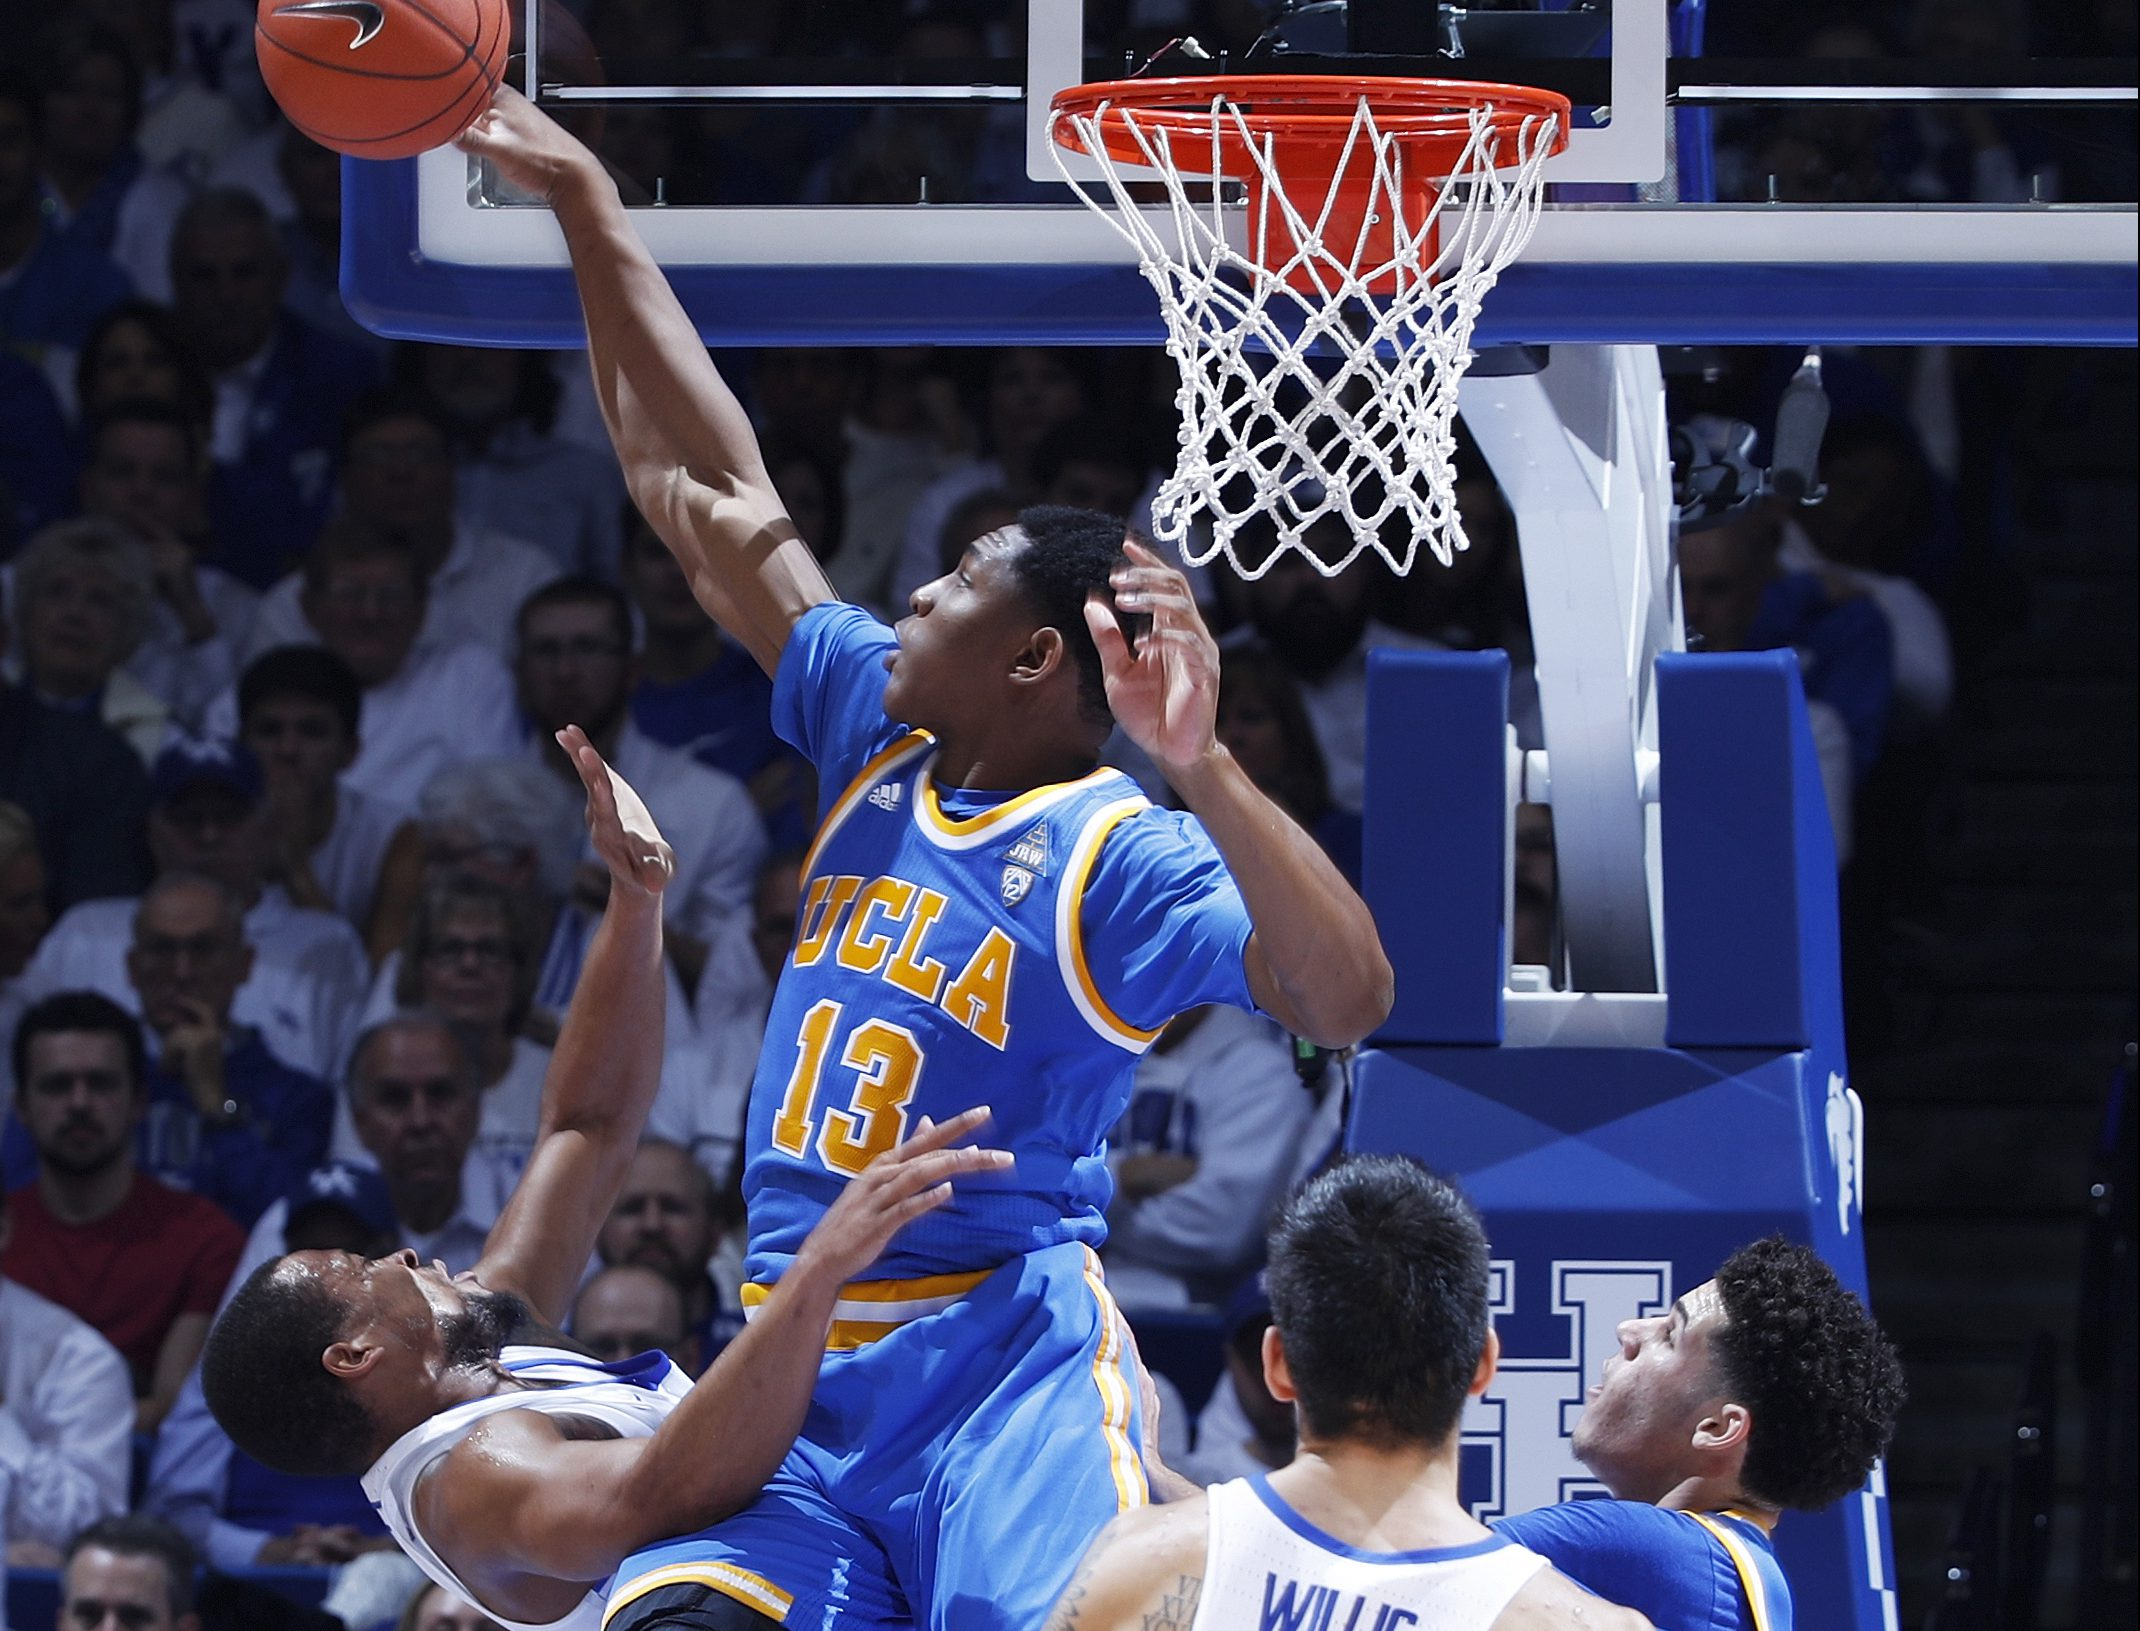 LEXINGTON, KY - DECEMBER 03: Ike Anigbogu #13 of the UCLA Bruins blocks a shot by Isaiah Briscoe #13 of the Kentucky Wildcats in the first half of the game at Rupp Arena on December 3, 2016 in Lexington, Kentucky. UCLA defeated Kentucky 97-92. (Photo by Joe Robbins/Getty Images)